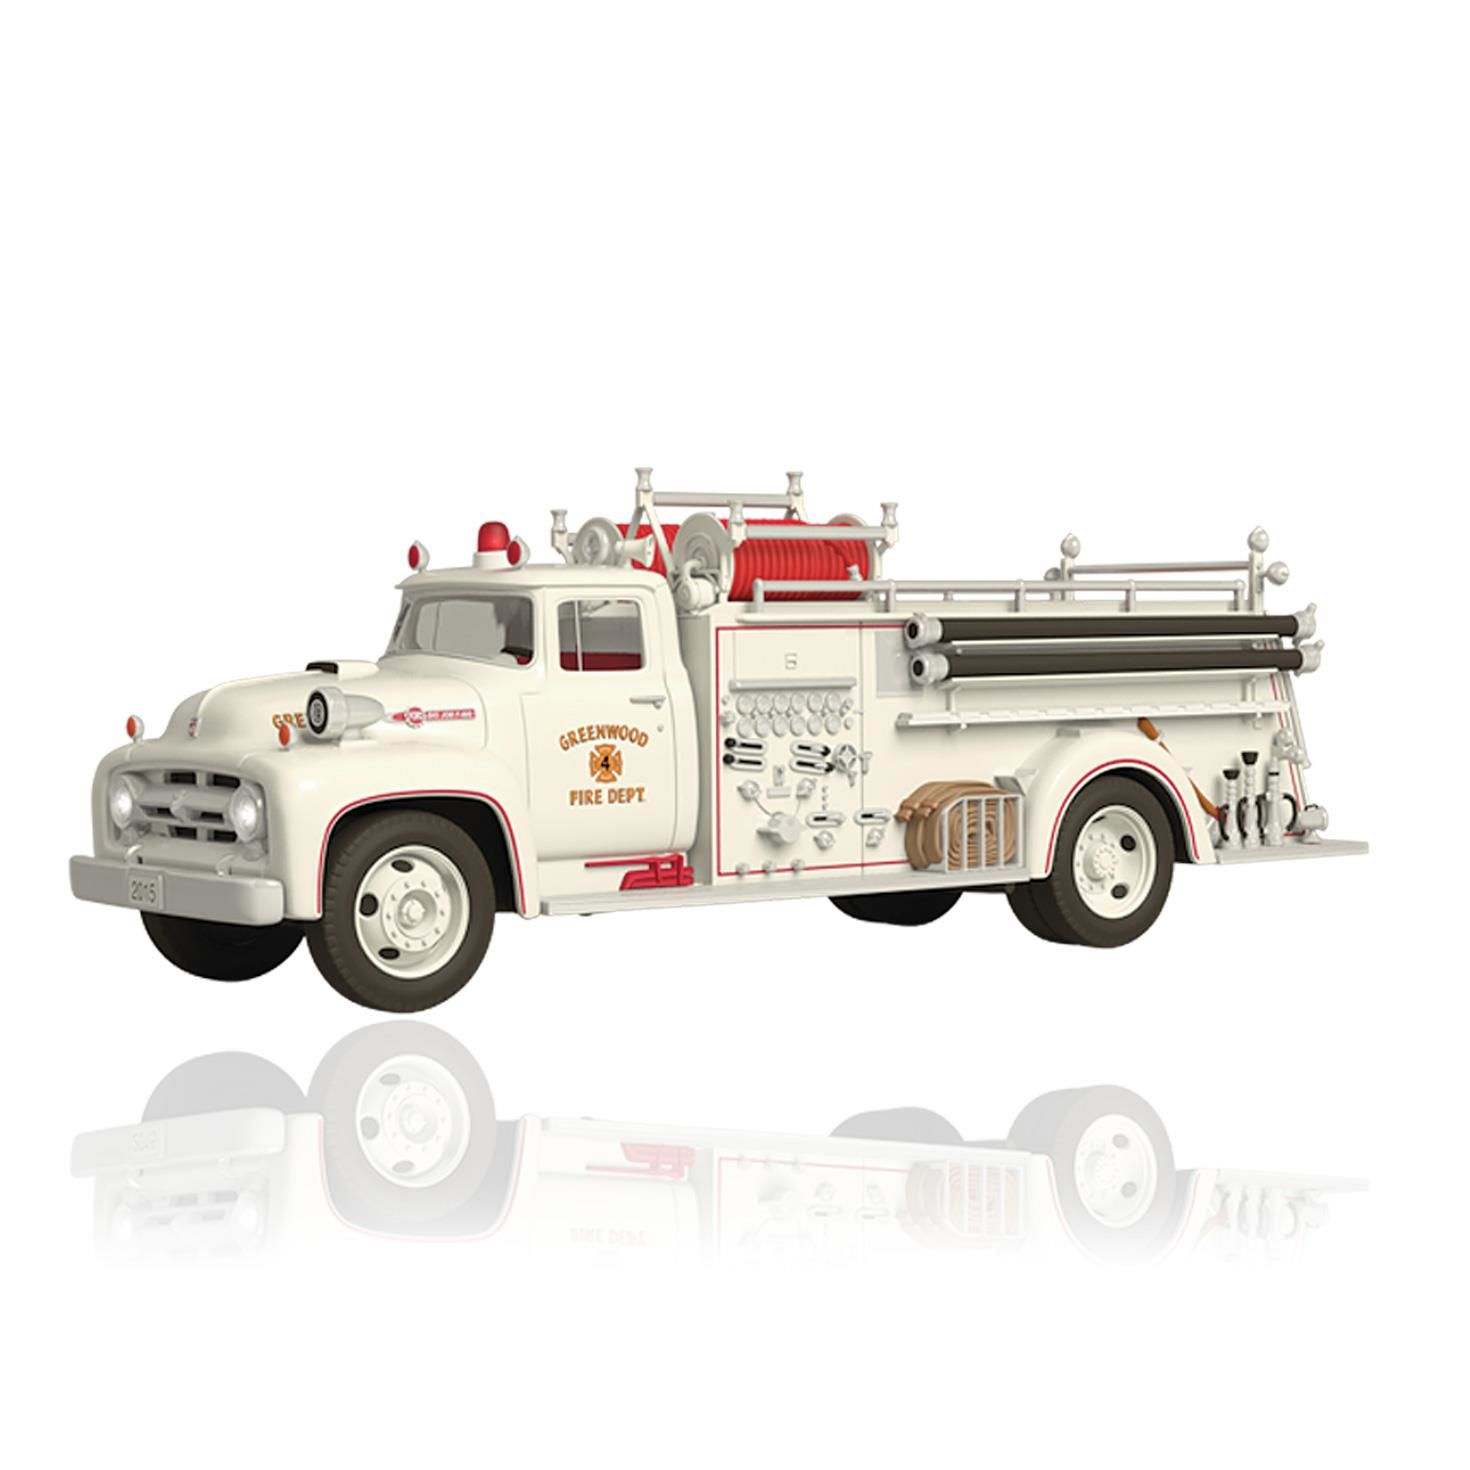 2013 Ornaments Fire Truck Hallmark